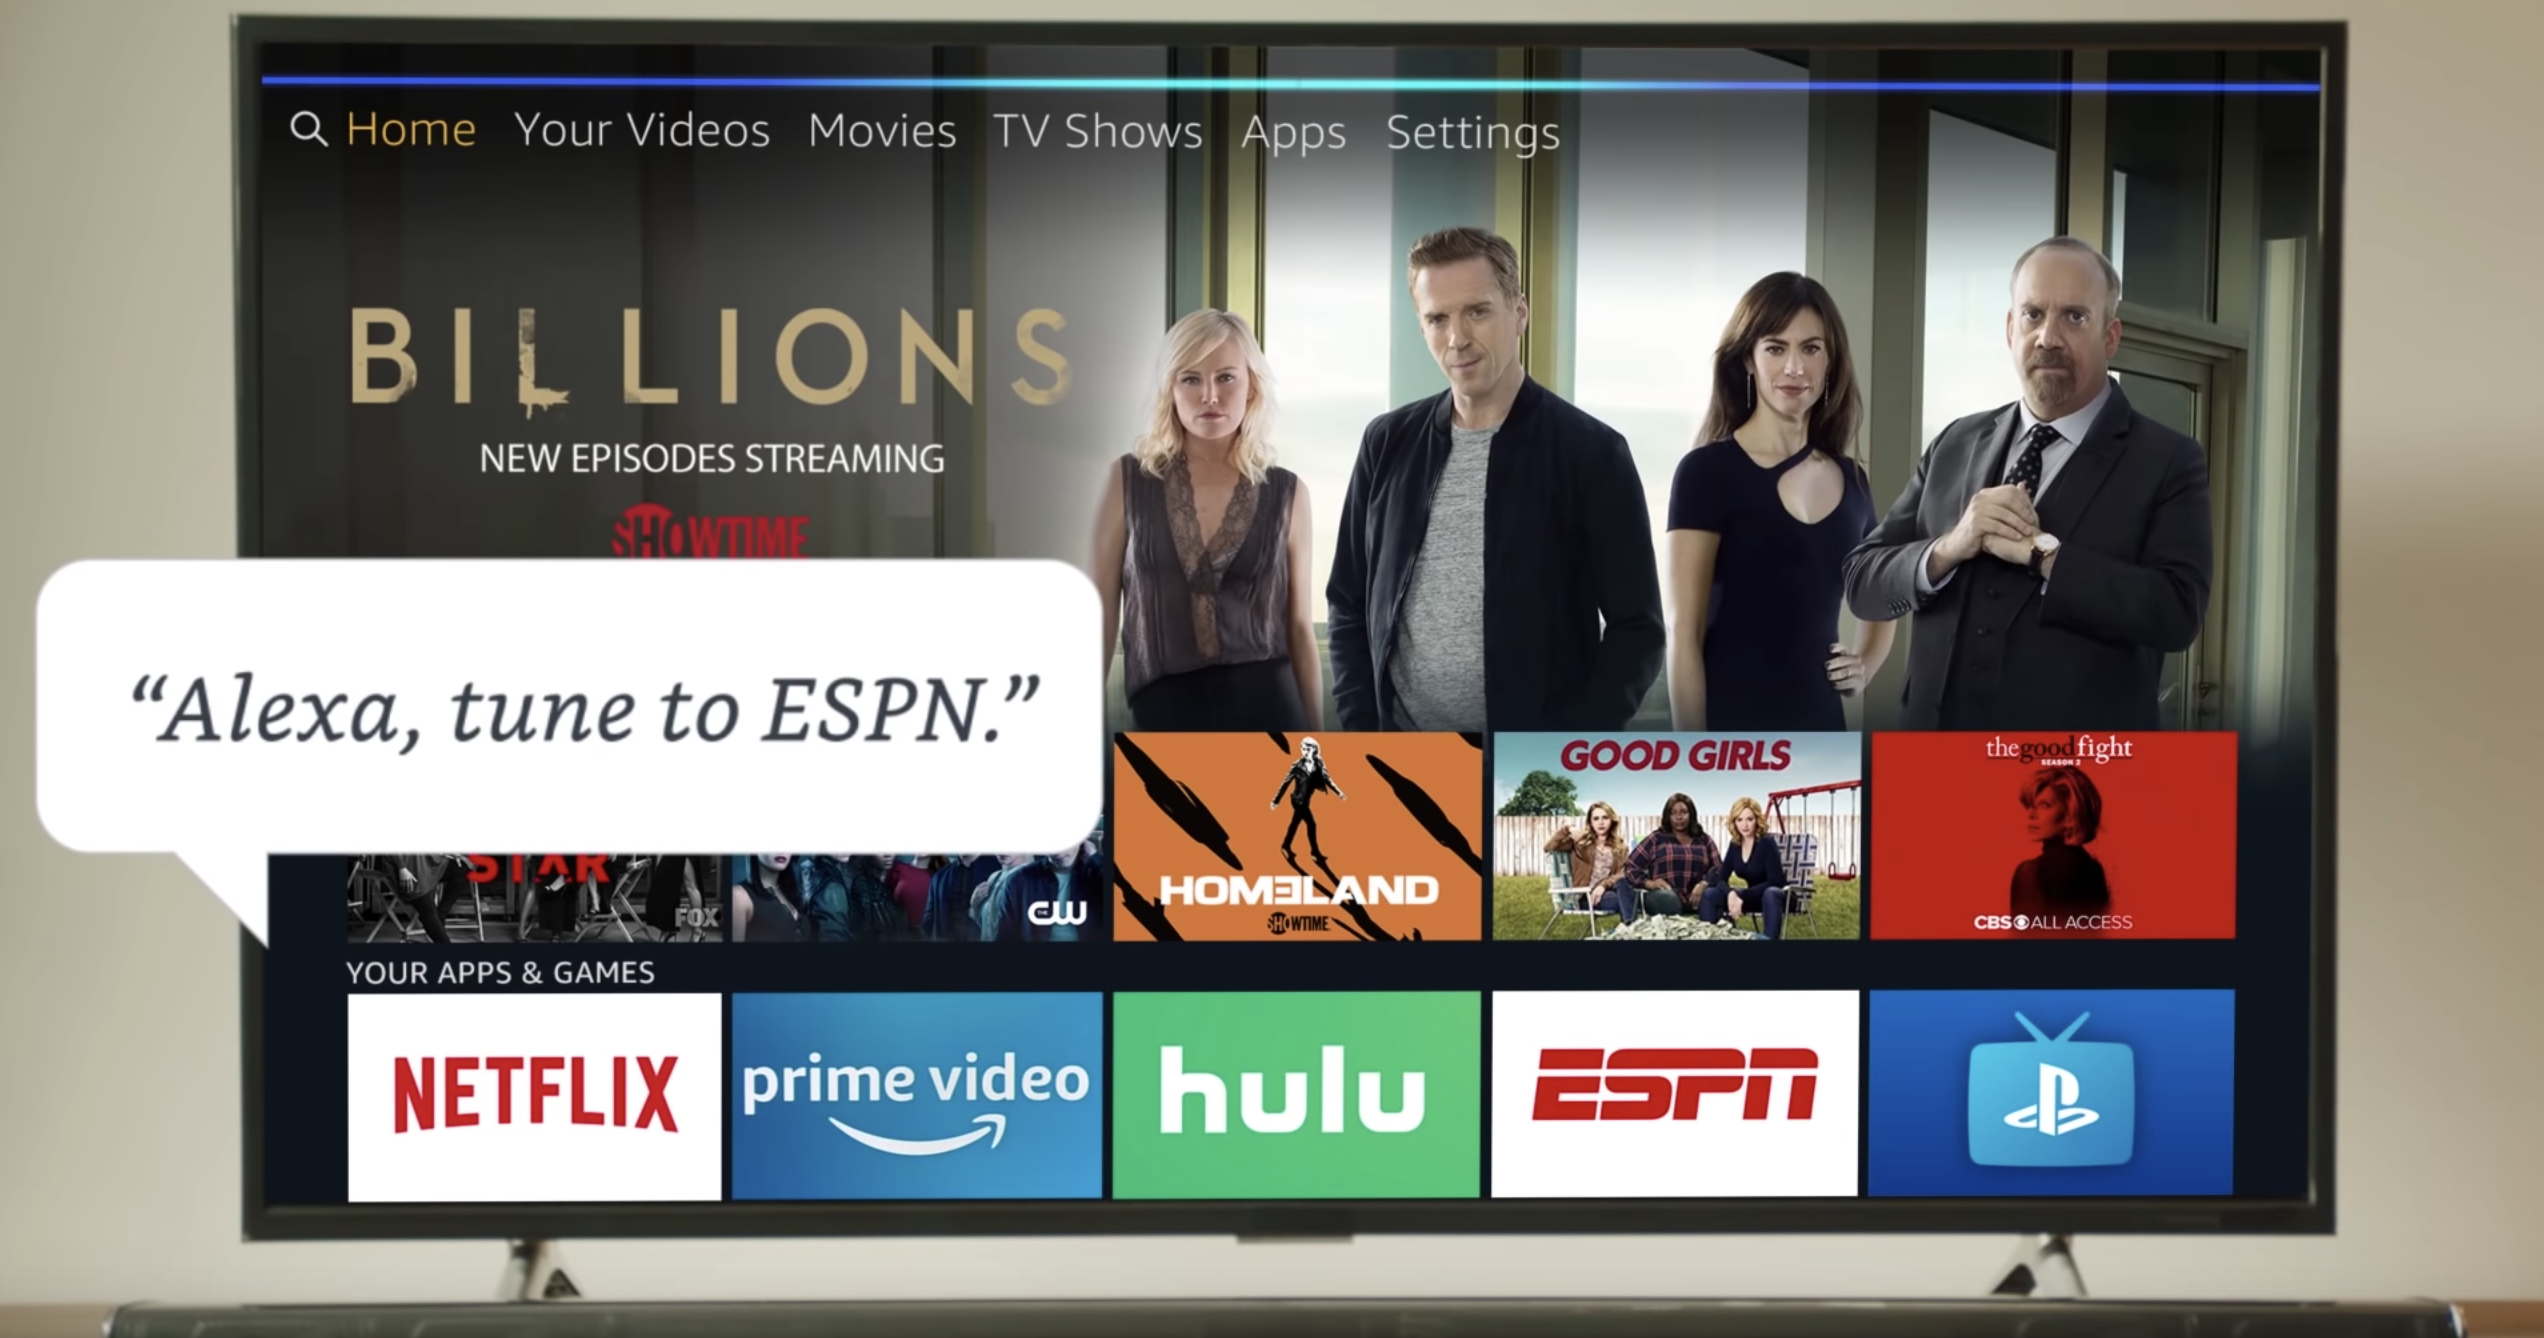 PlayStation Vue makes Live TV easy on Fire TV - Amazon Fire TV